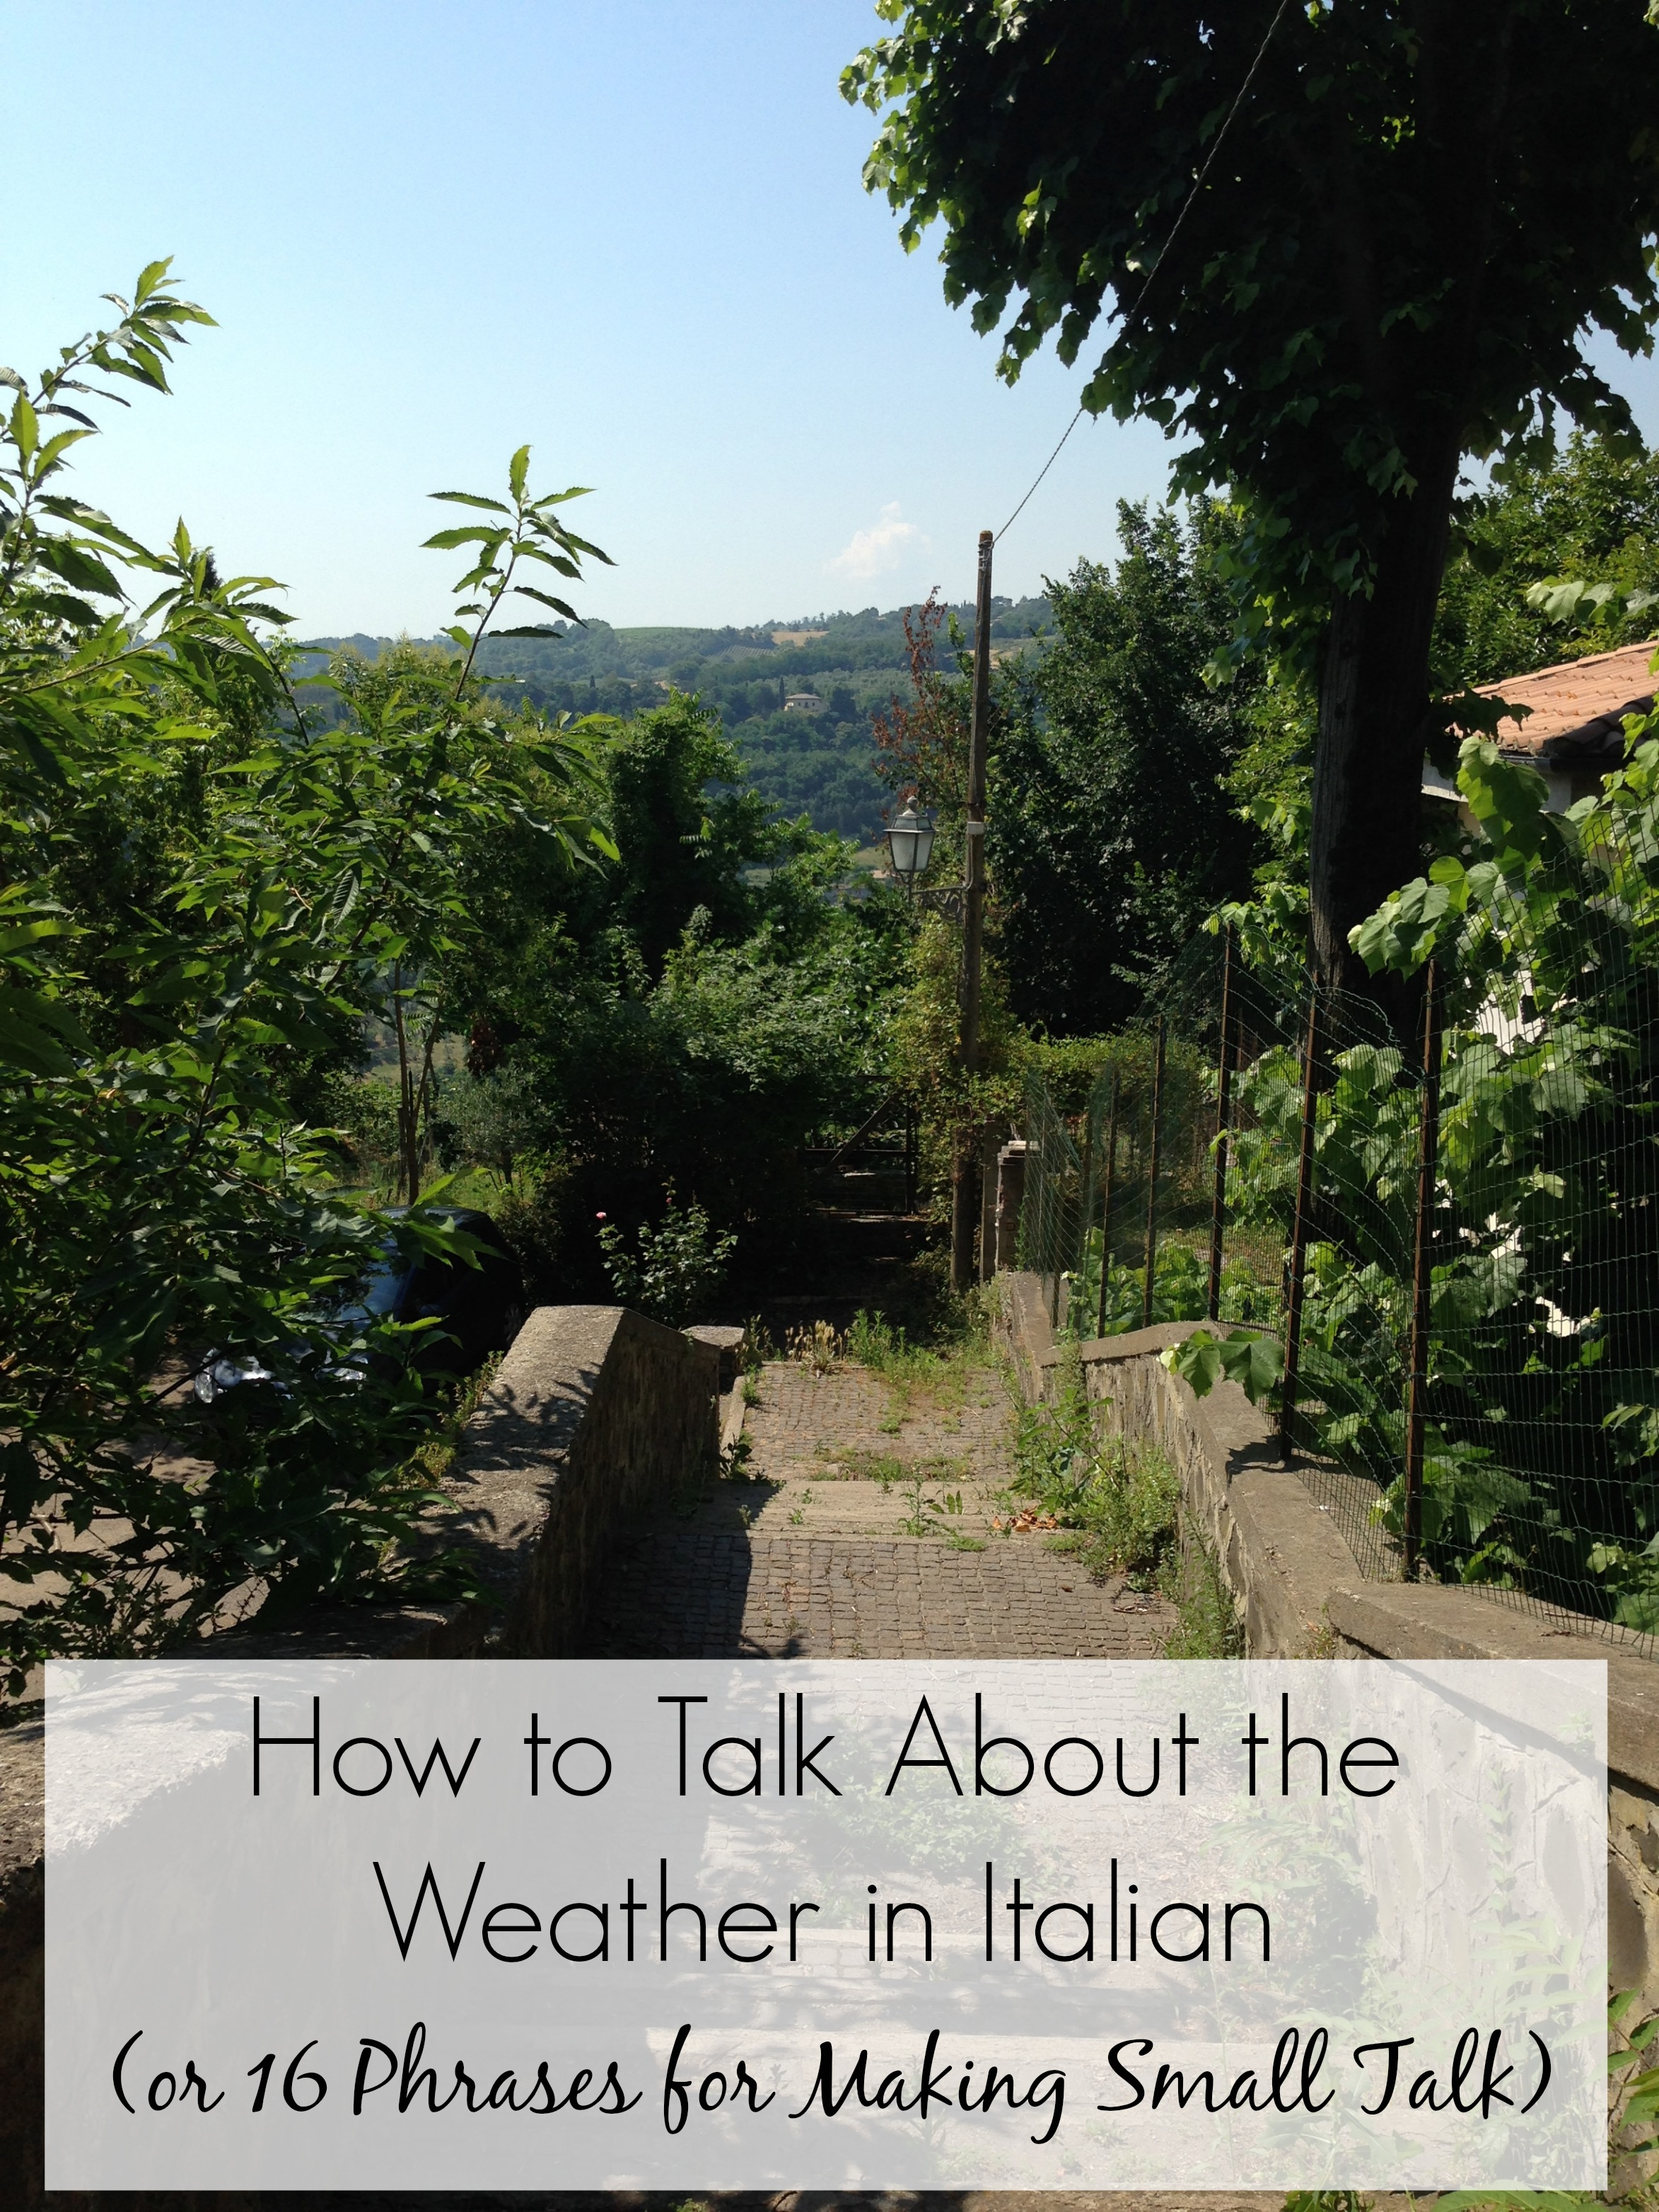 How to Talk About the Weather in Italian (with 16 Phrases for Making Small Talk)